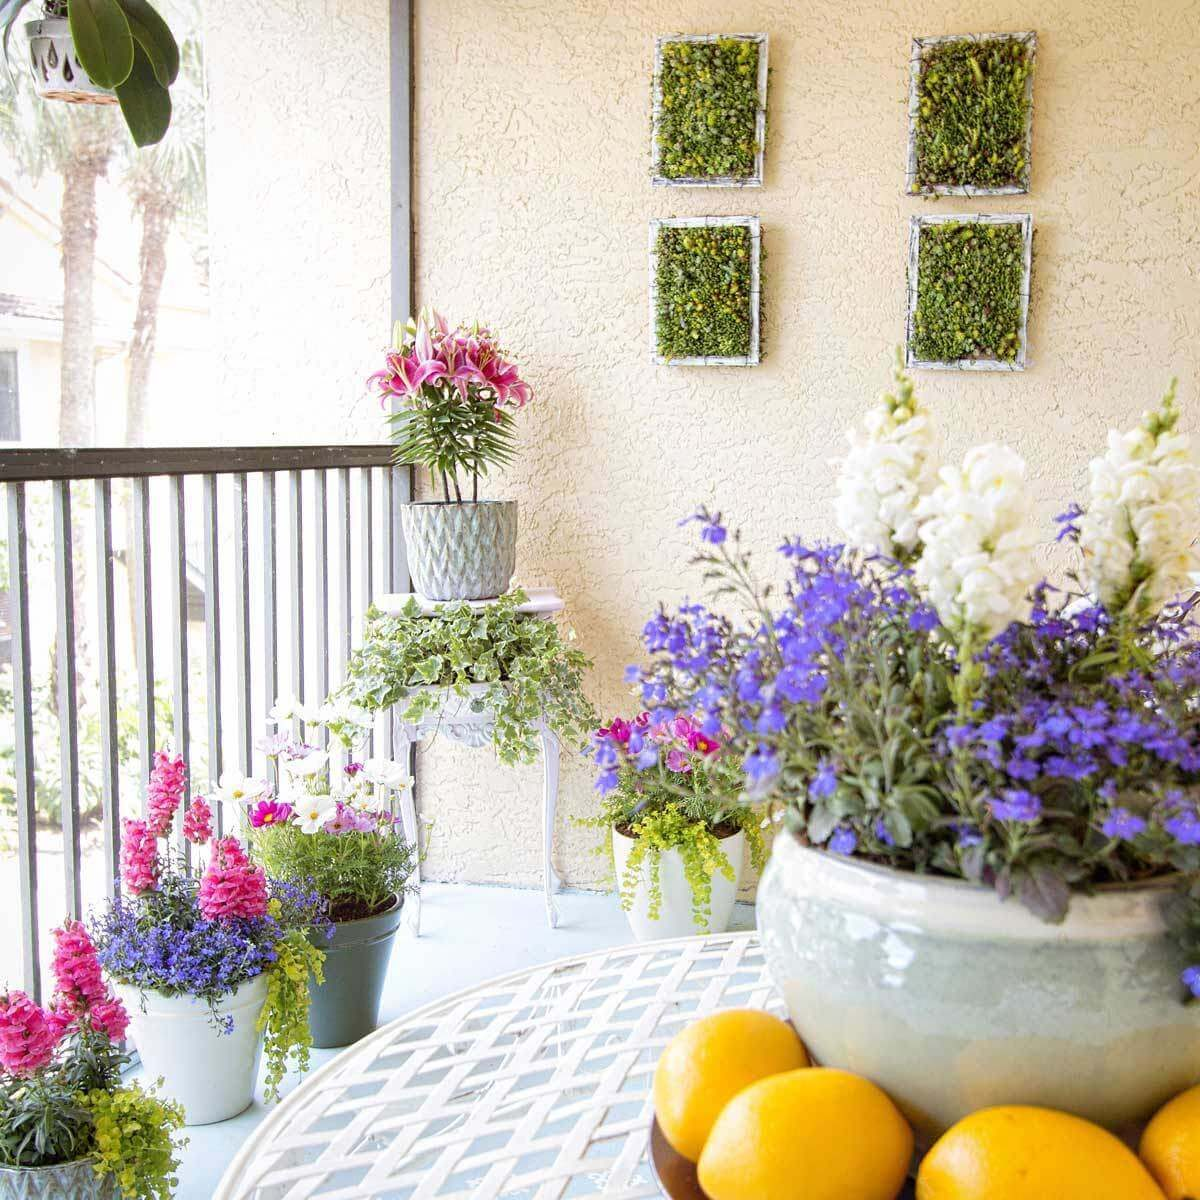 container plants Colorful annuals brighten an outdoor living space